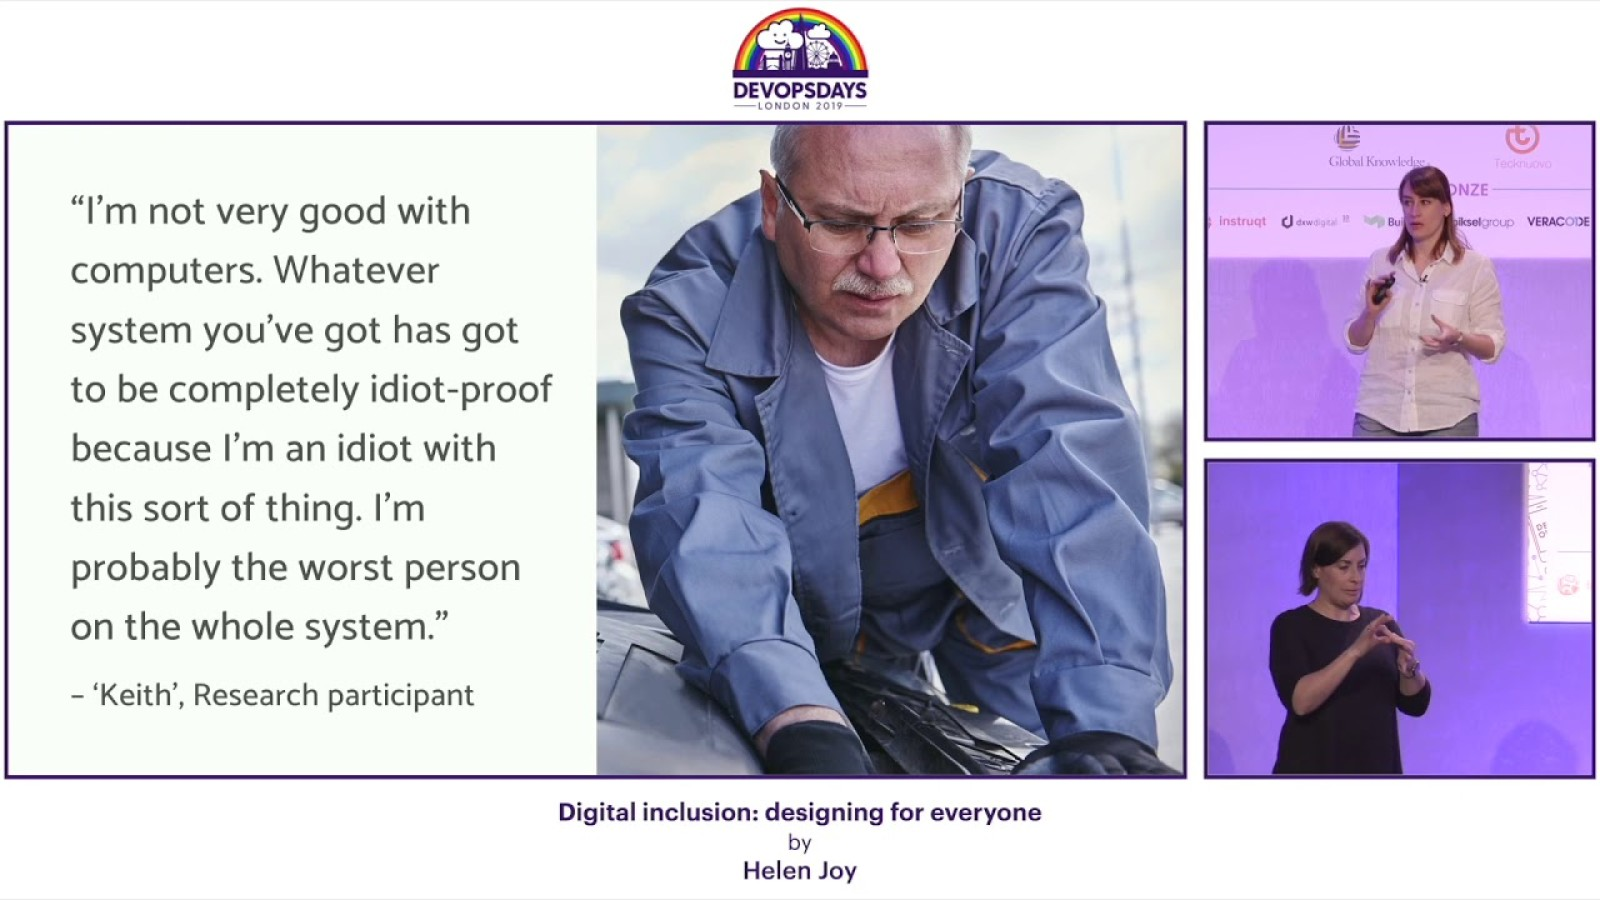 Digital inclusion: designing for everyone